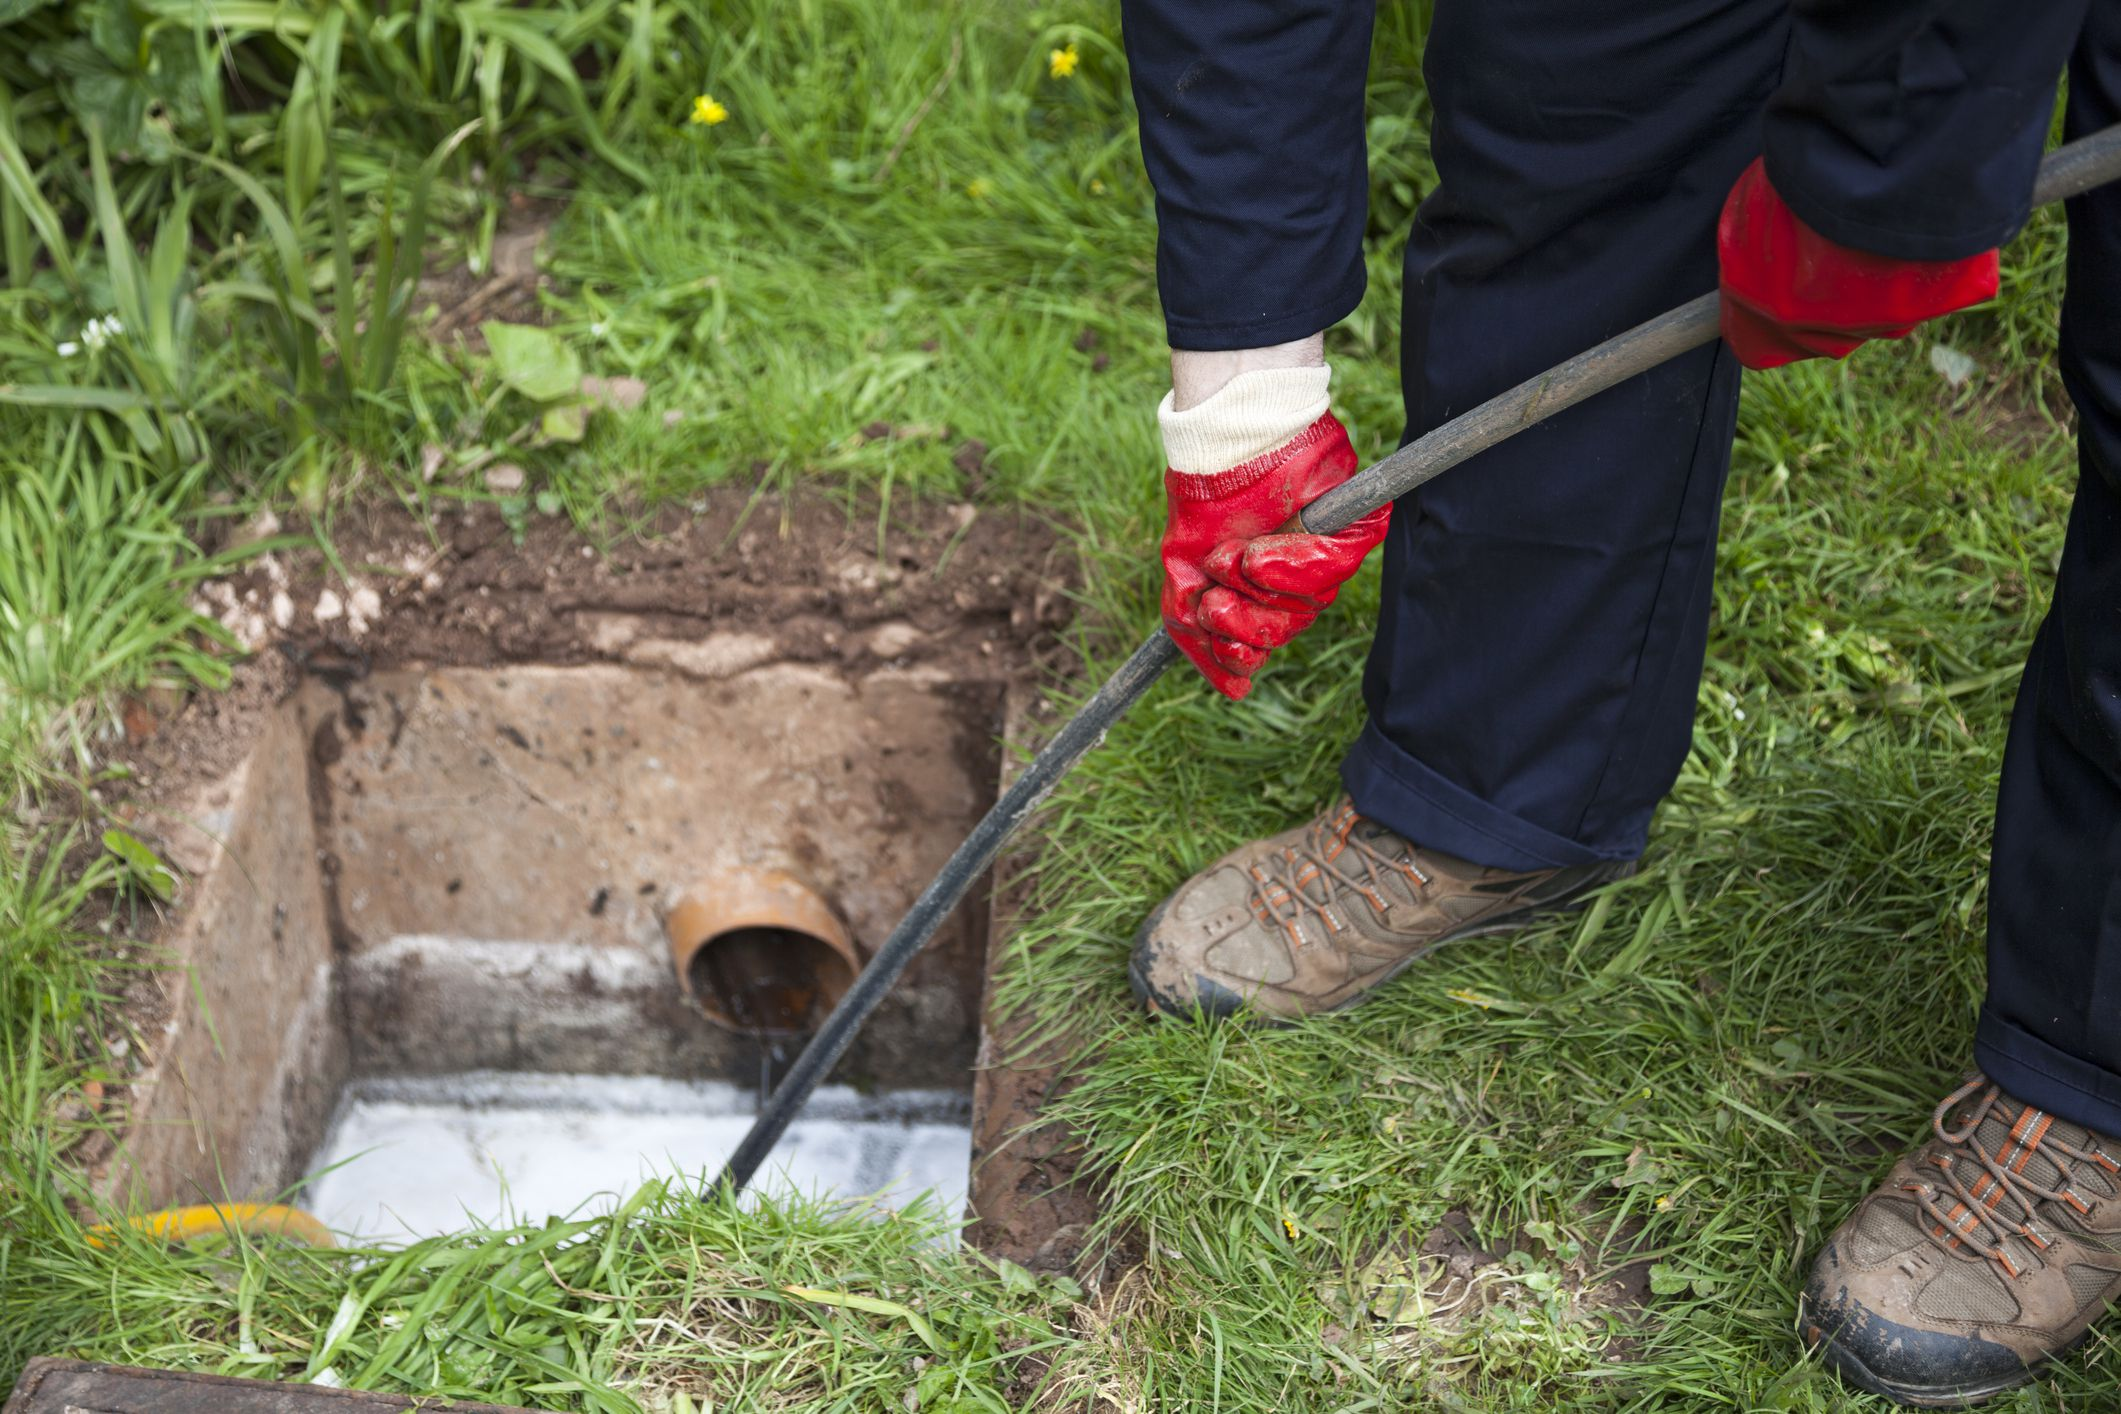 Garten Pool Ohne Strom What You Should Know About Sewer Main Drains